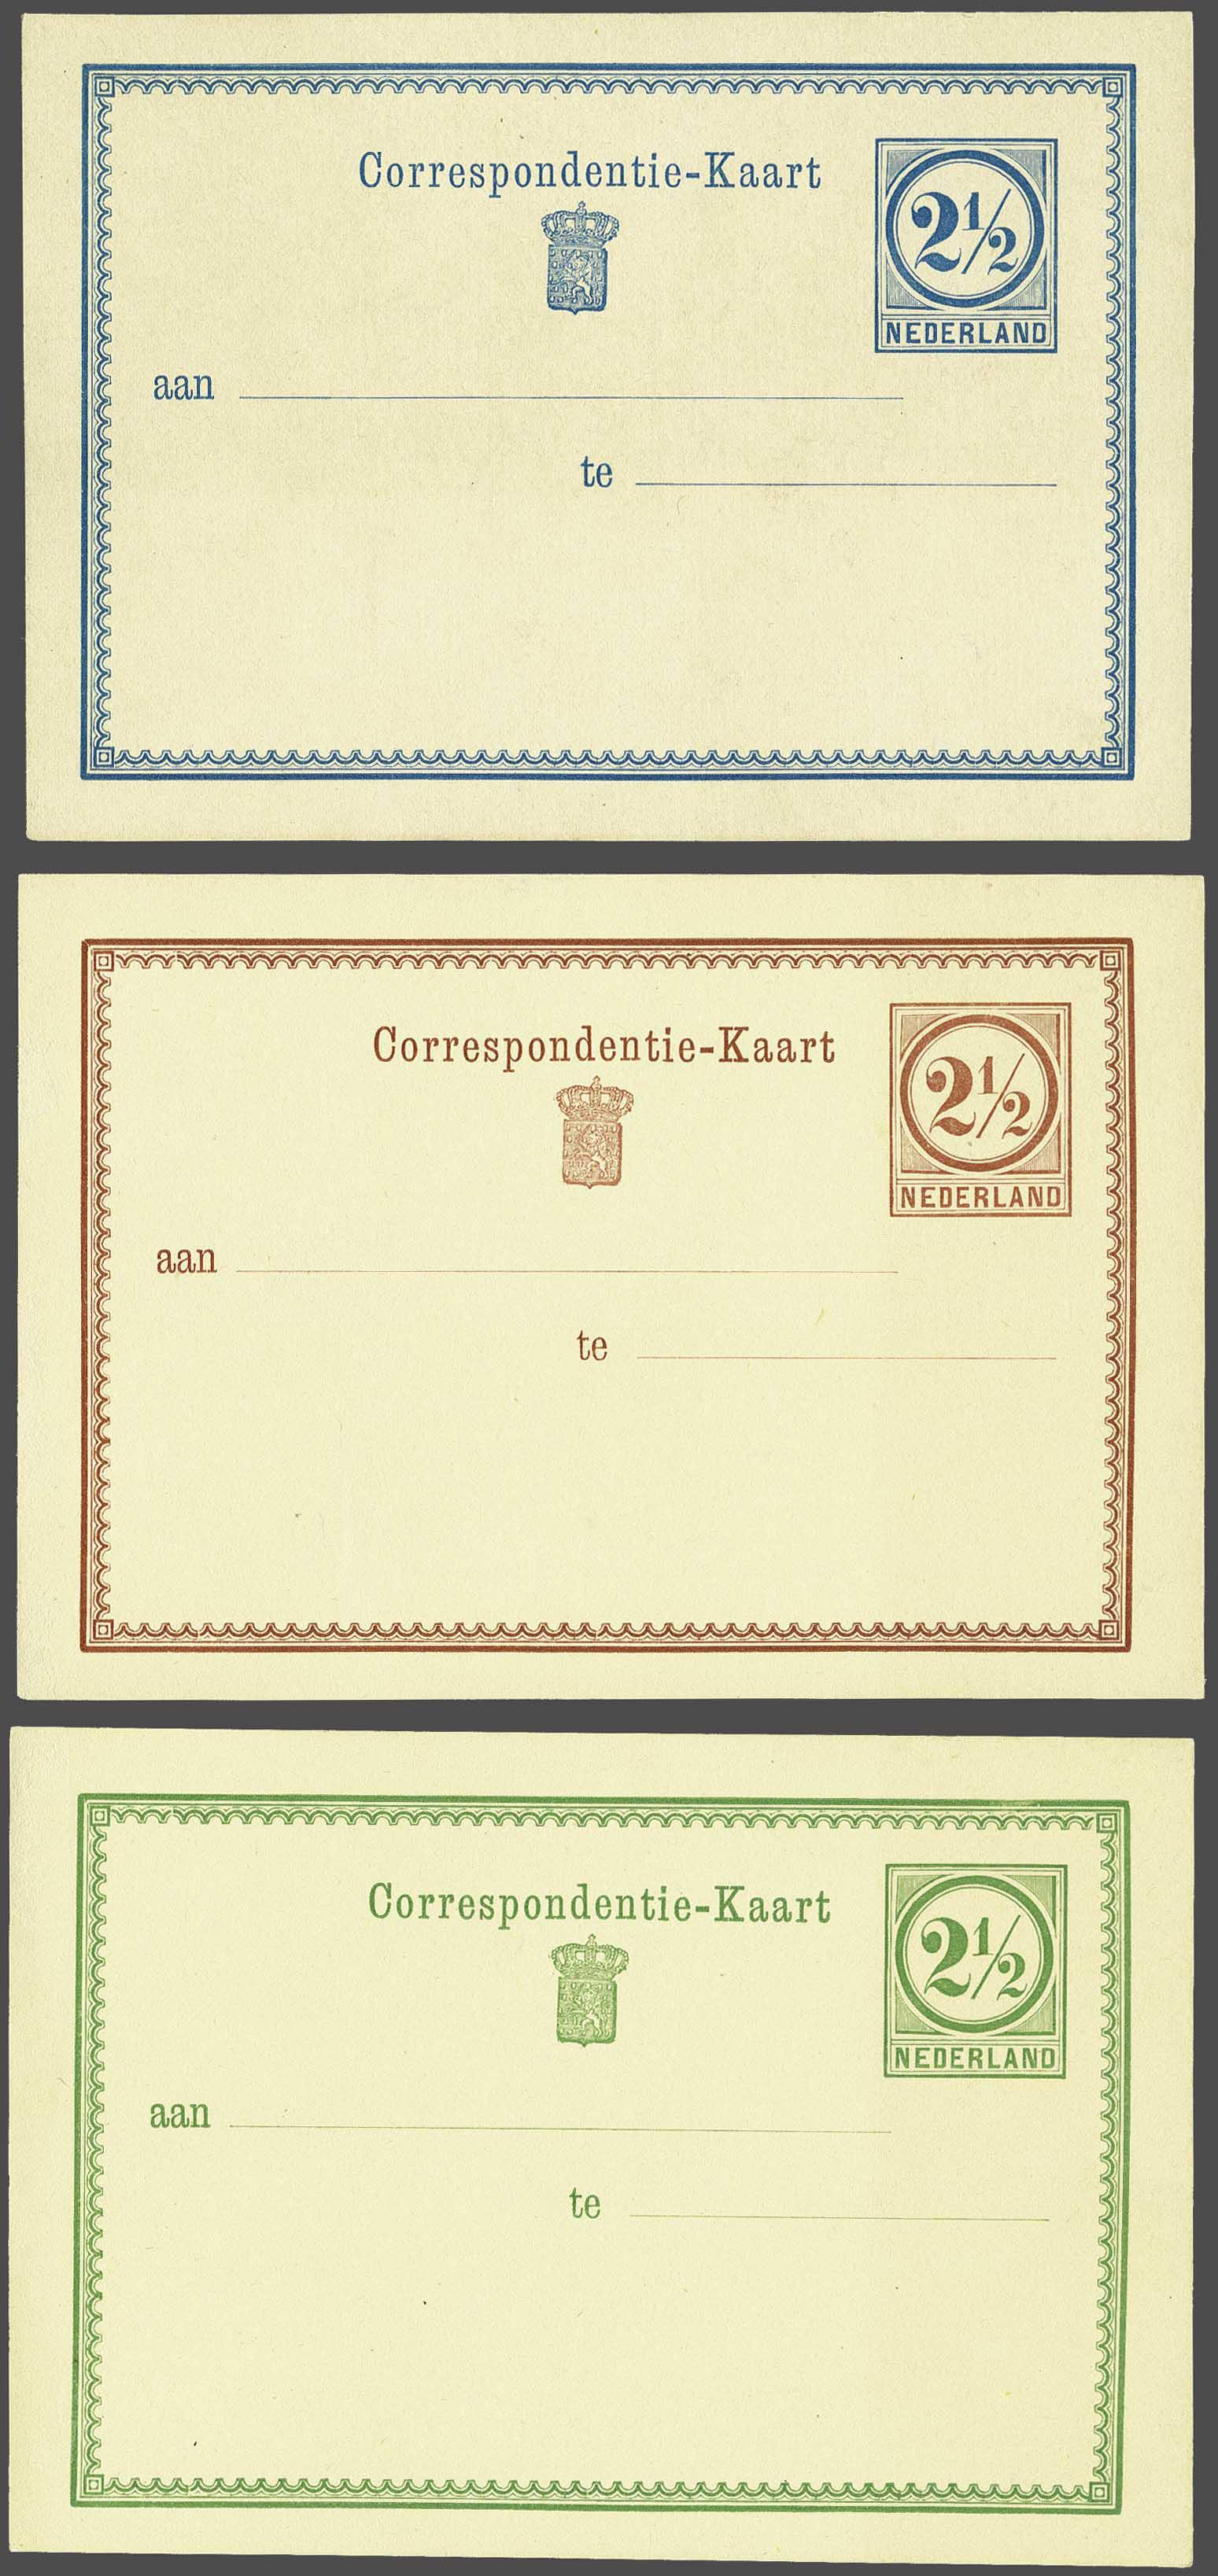 Lot 1825 - Netherlands and former colonies Netherlands Postal Stationery -  Corinphila Veilingen Auction 245-246 Day 3 - Netherlands and former colonies - Single lots, Collections and lots, Boxes and literature